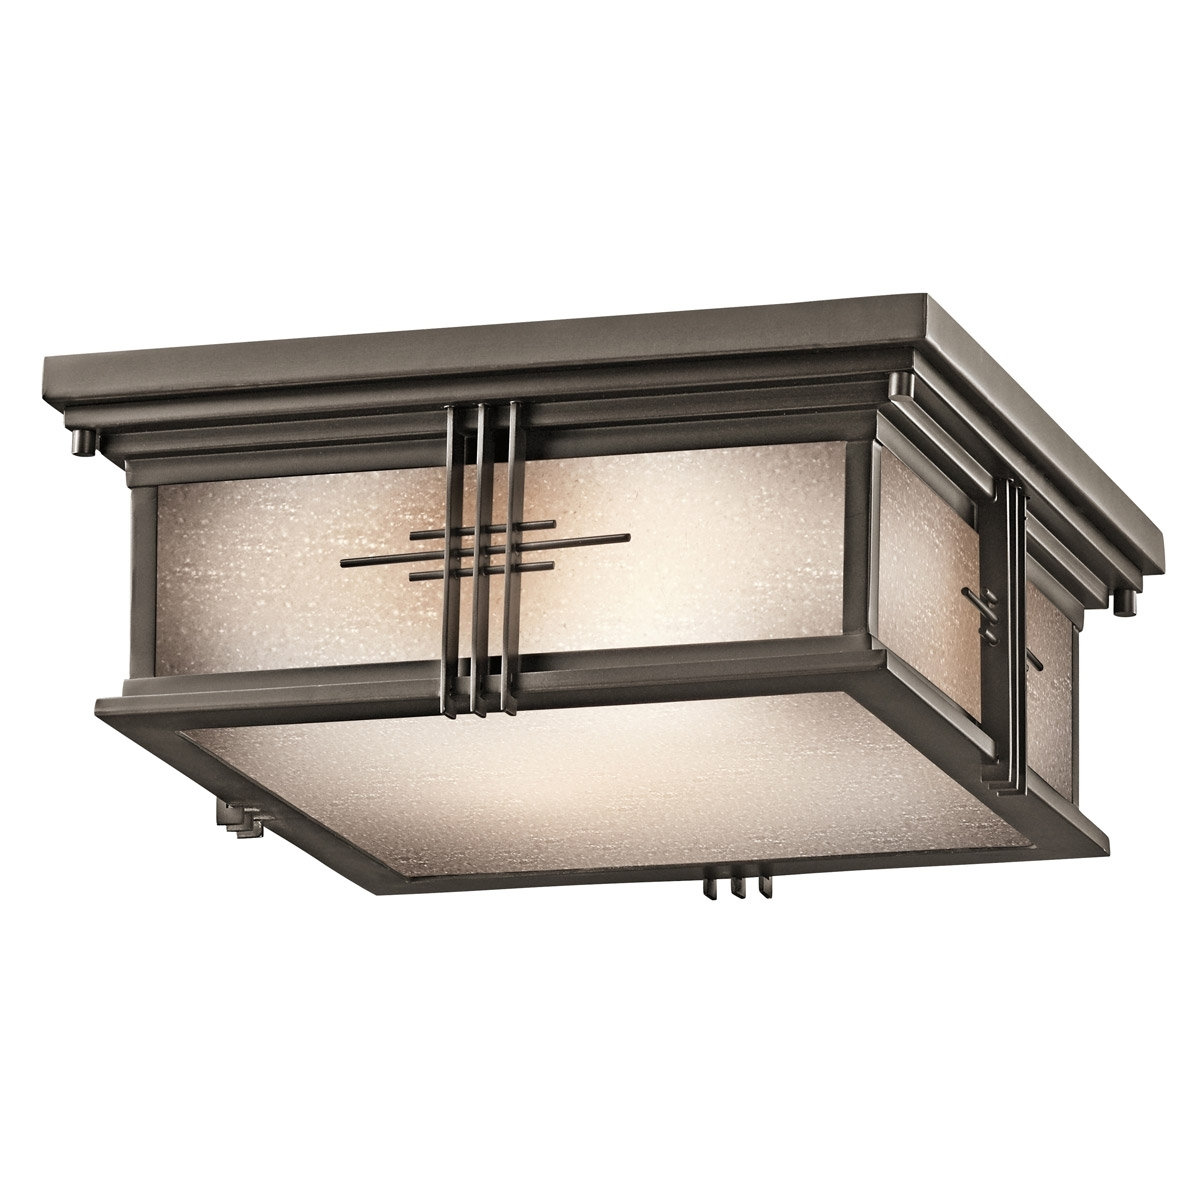 Best And Newest 49164Oz Portman Square Outdoor Flush Mount Ceiling Fixture Intended For Outdoor Ceiling Flush Lights (View 1 of 20)